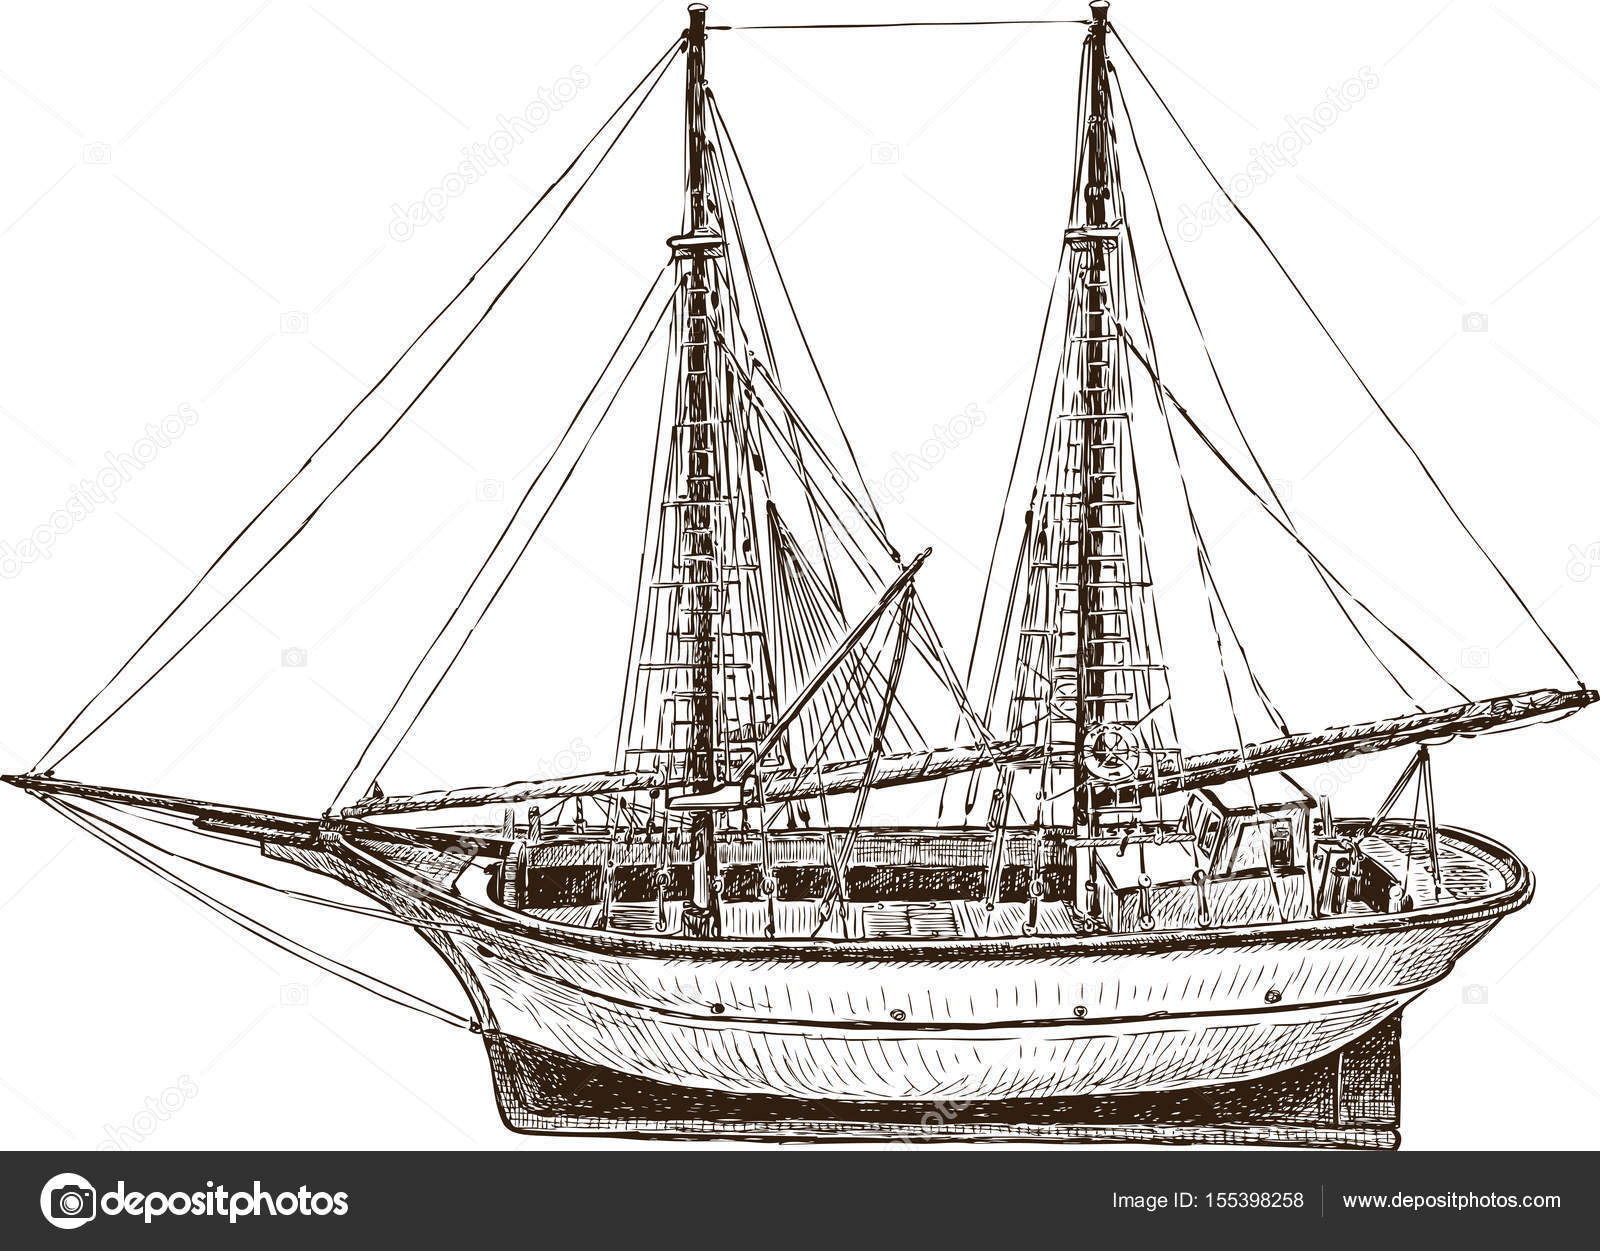 Drawing Of A Sailing Fishing Greek Boat Stock Vector 155398258